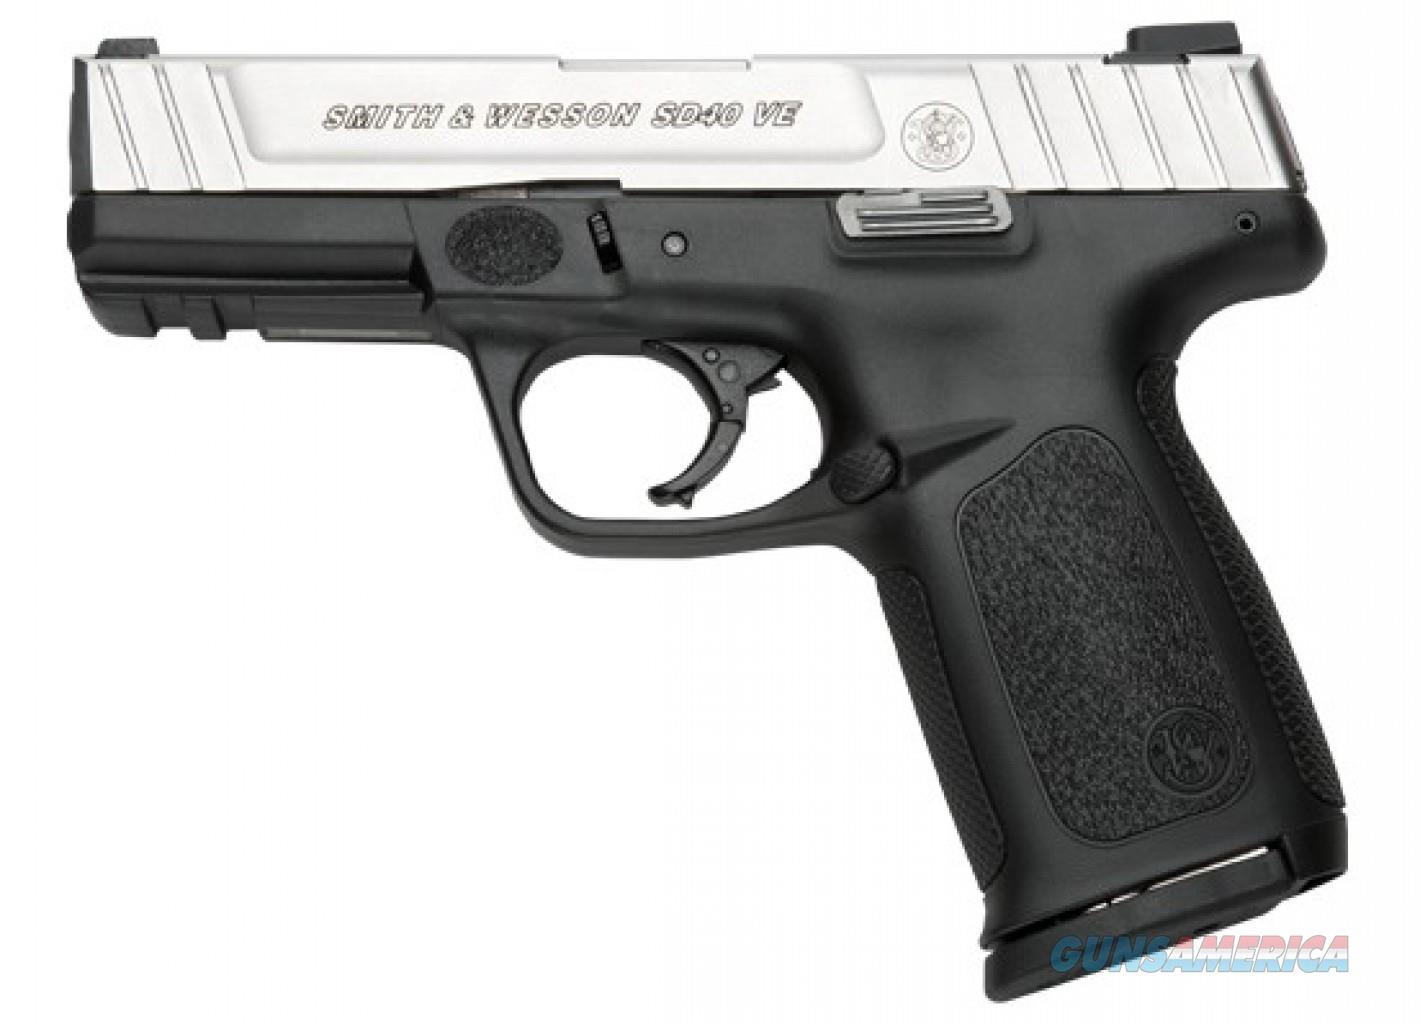 Smith & Wesson SD40 VE .40 S&W  Guns > Pistols > Smith & Wesson Pistols - Autos > Polymer Frame